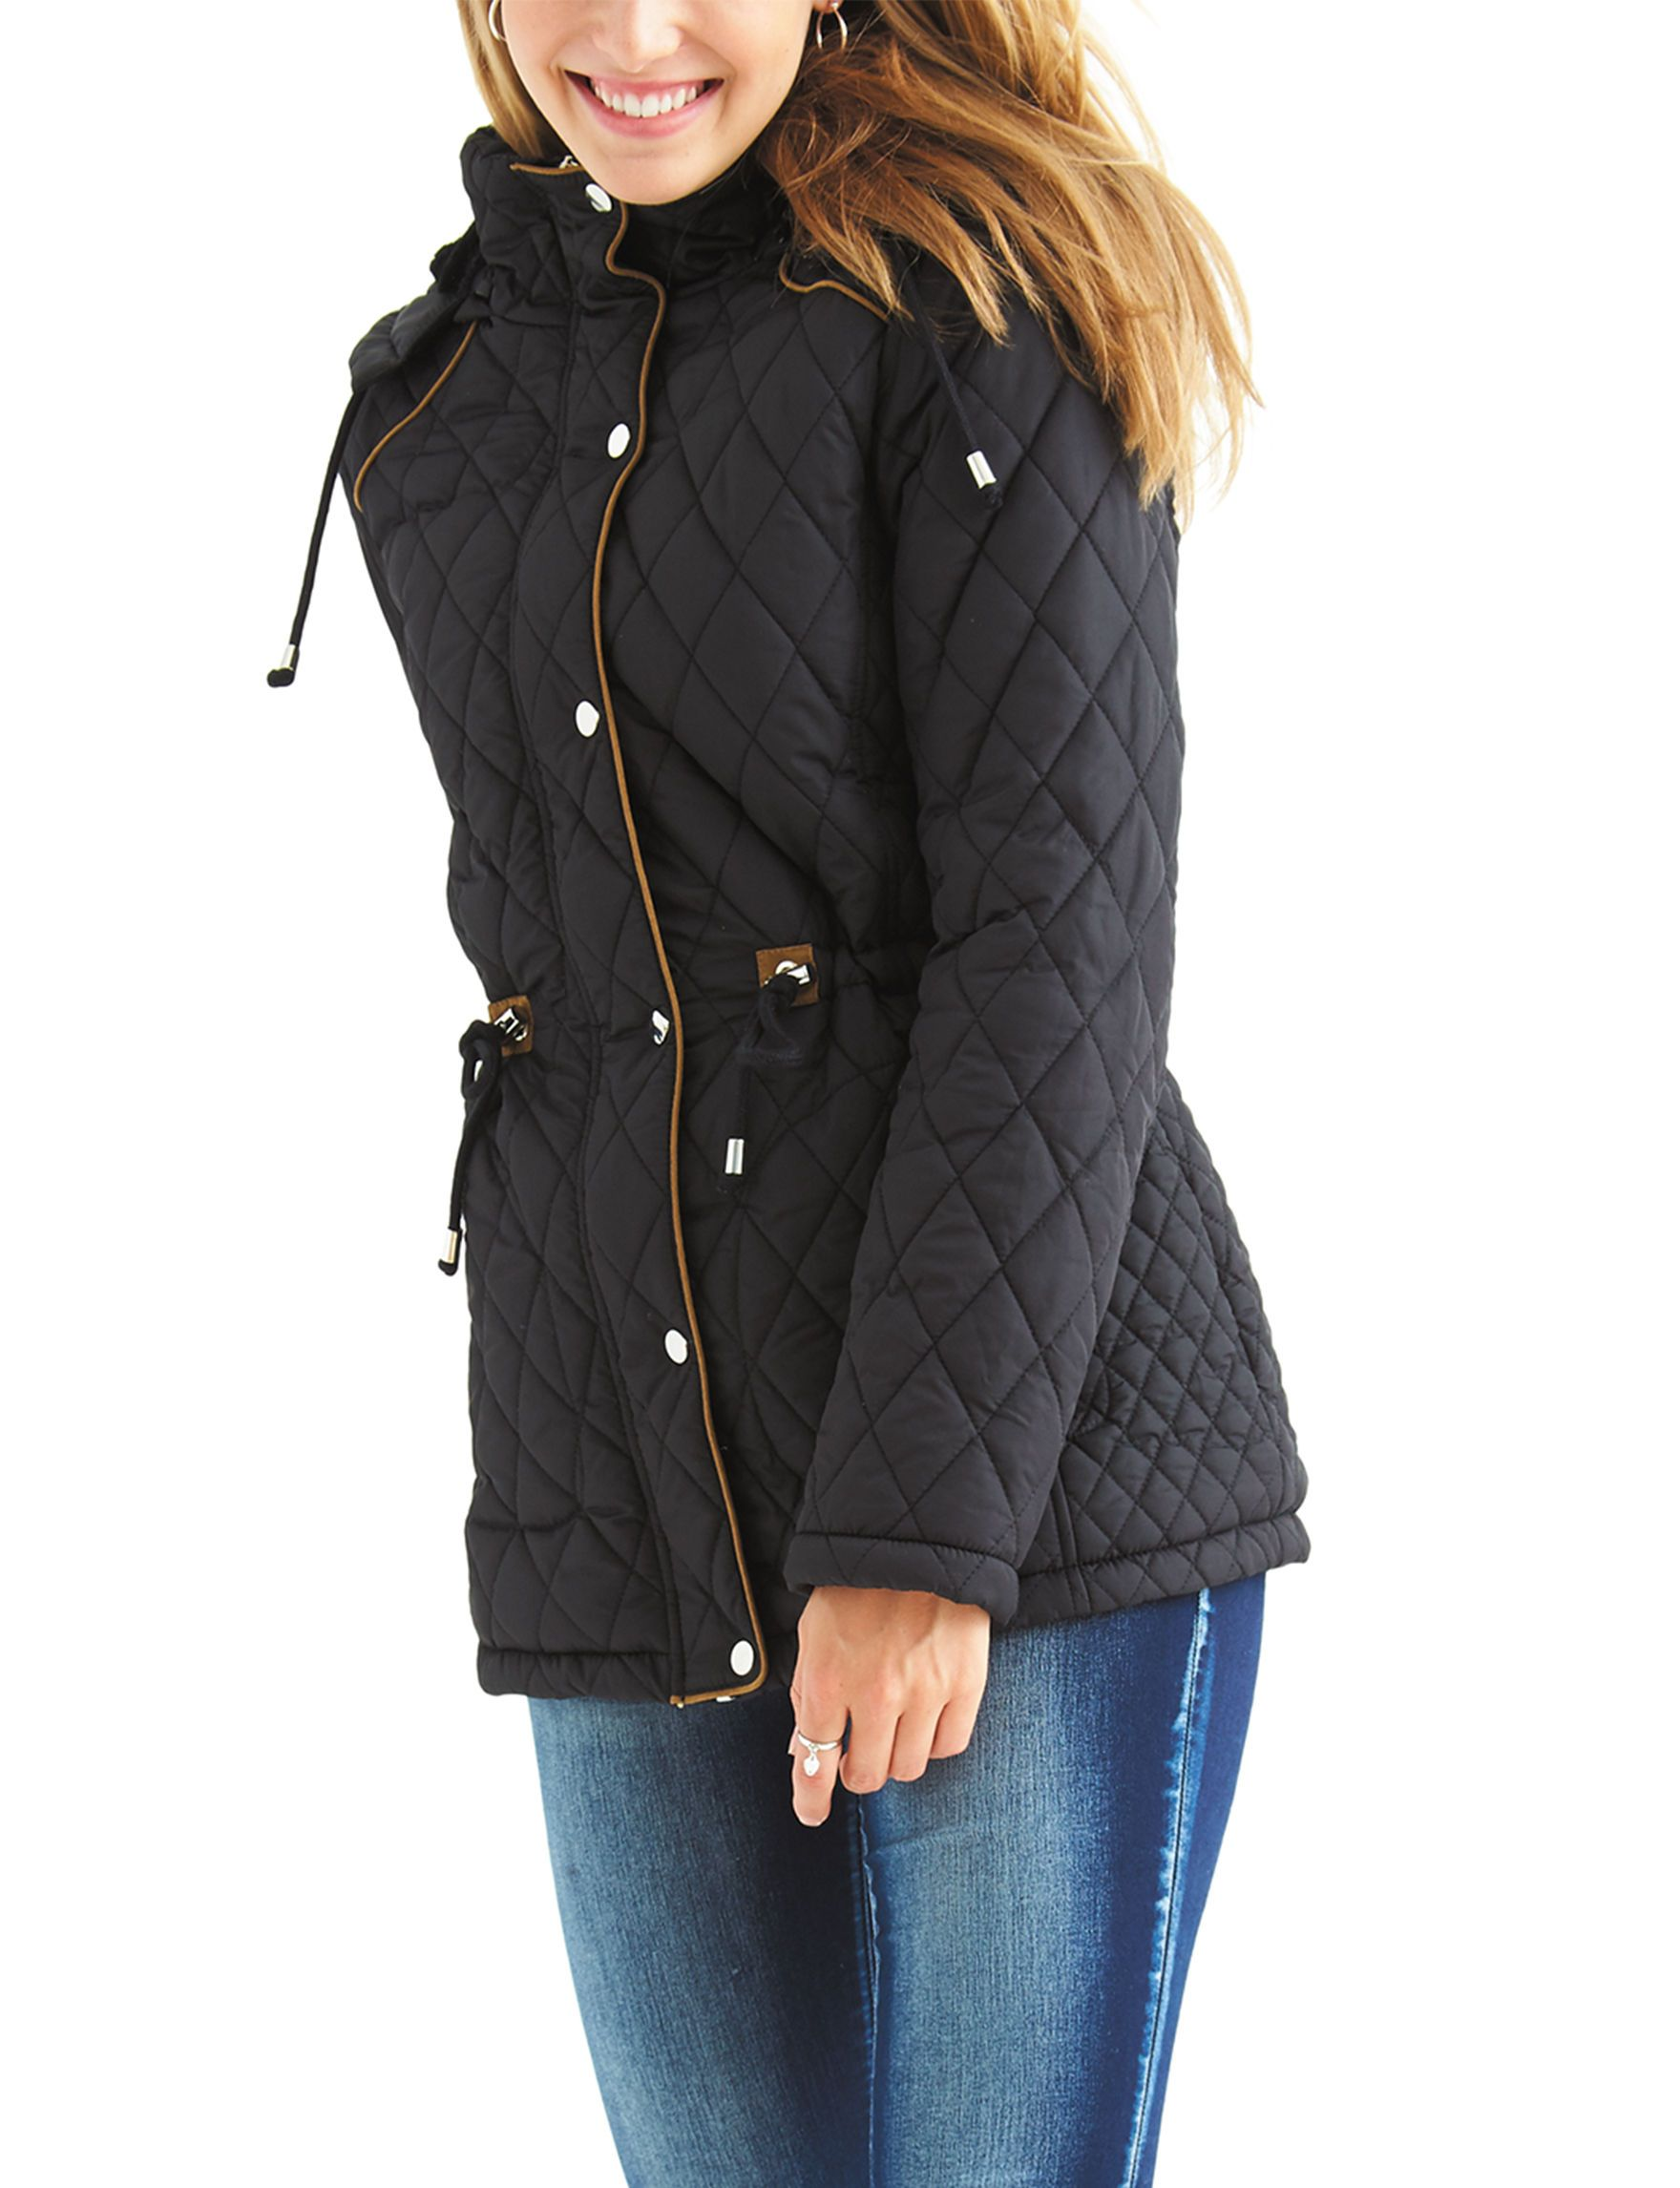 Ymi Anorak Quilted Puffer Jacket Quilted Puffer Jacket Anorak Puffer Jackets [ 2292 x 1760 Pixel ]